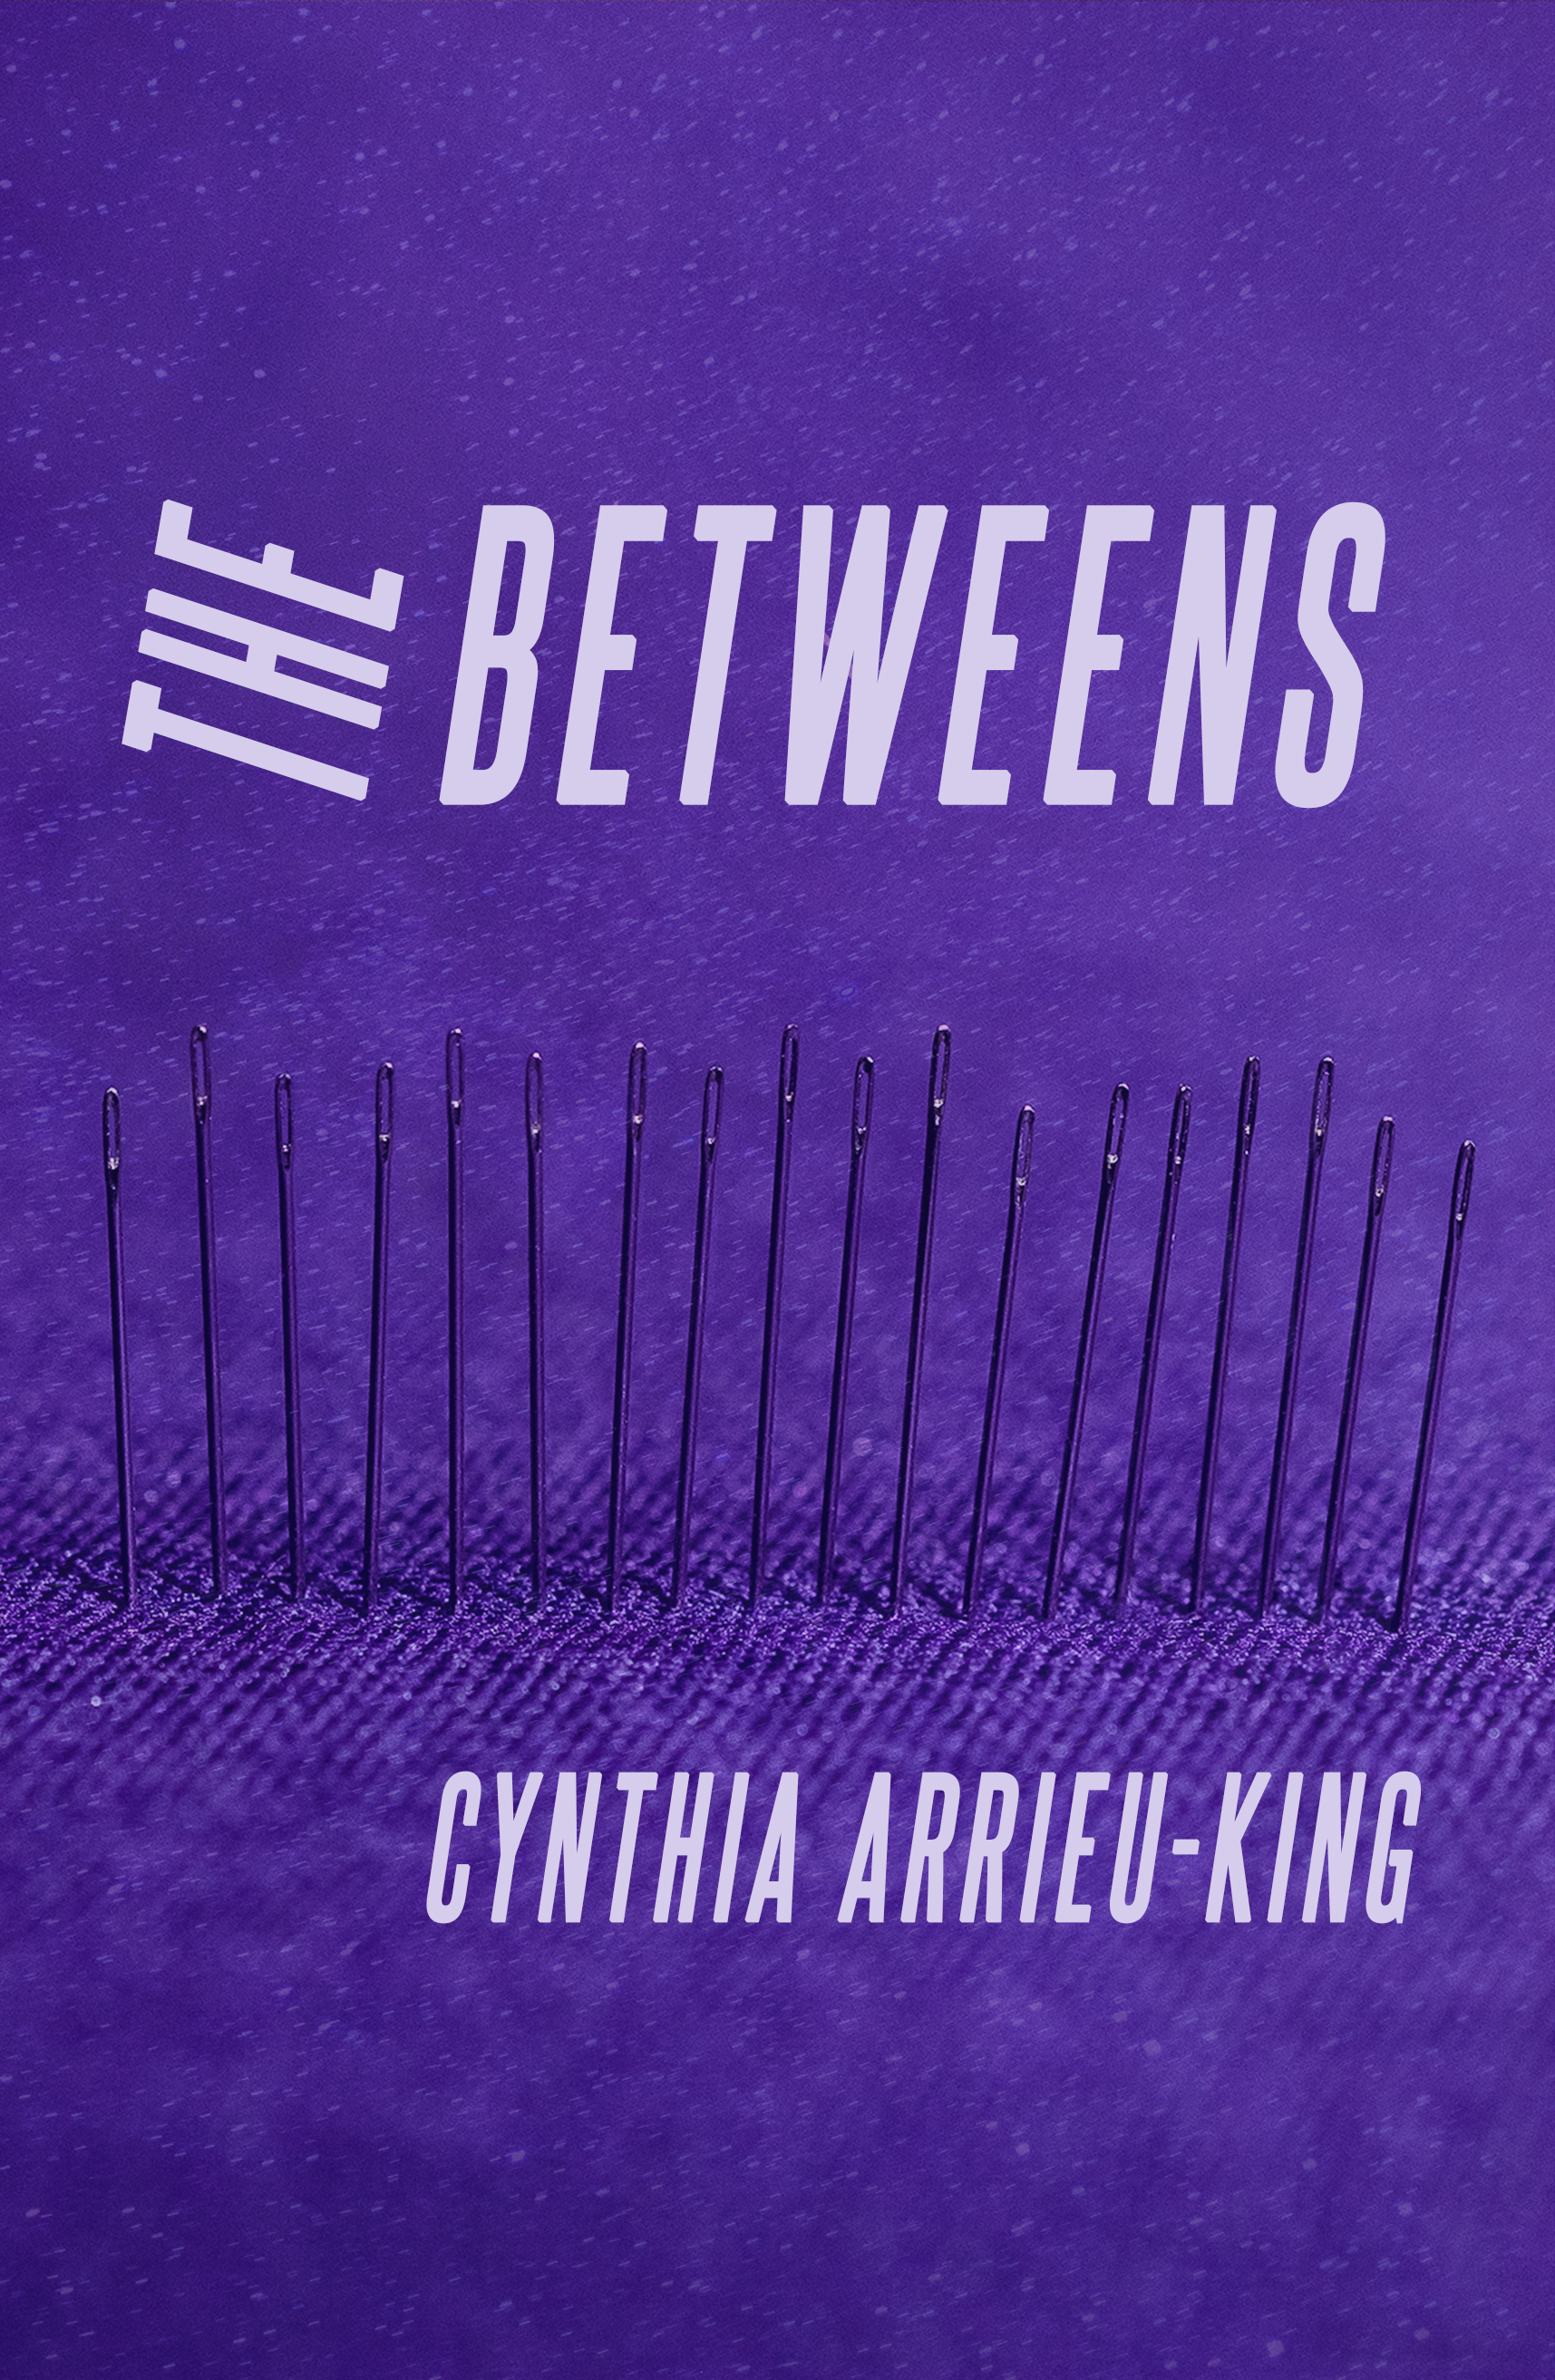 The Betweens